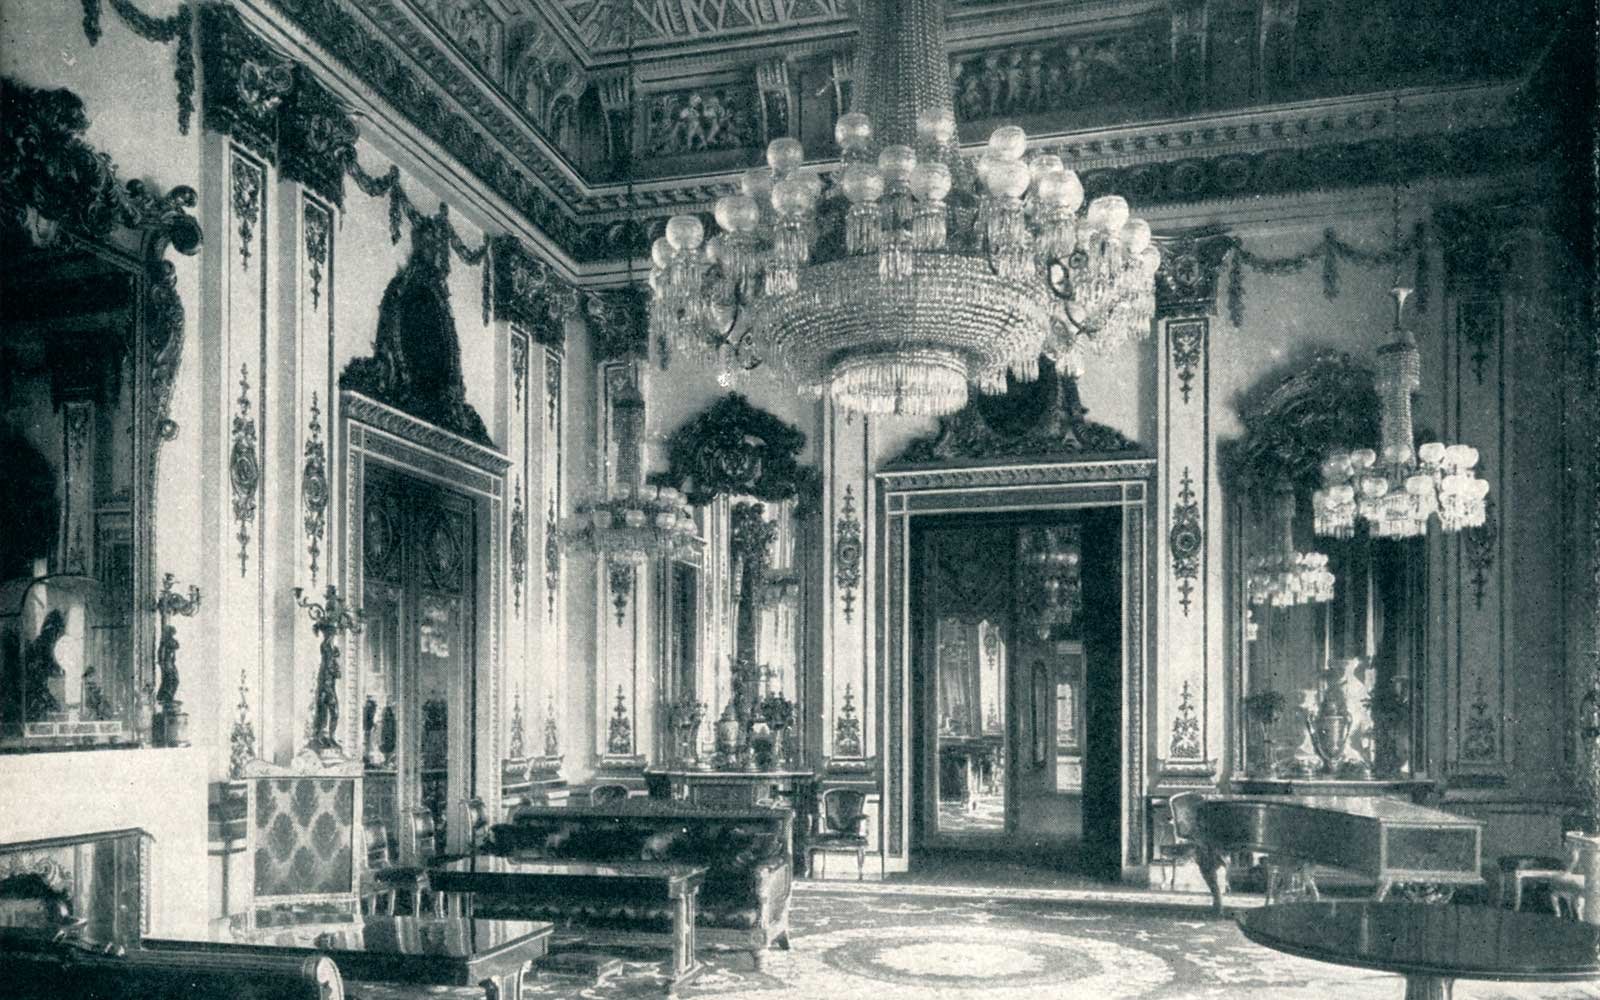 The White Drawing Room circa 1901